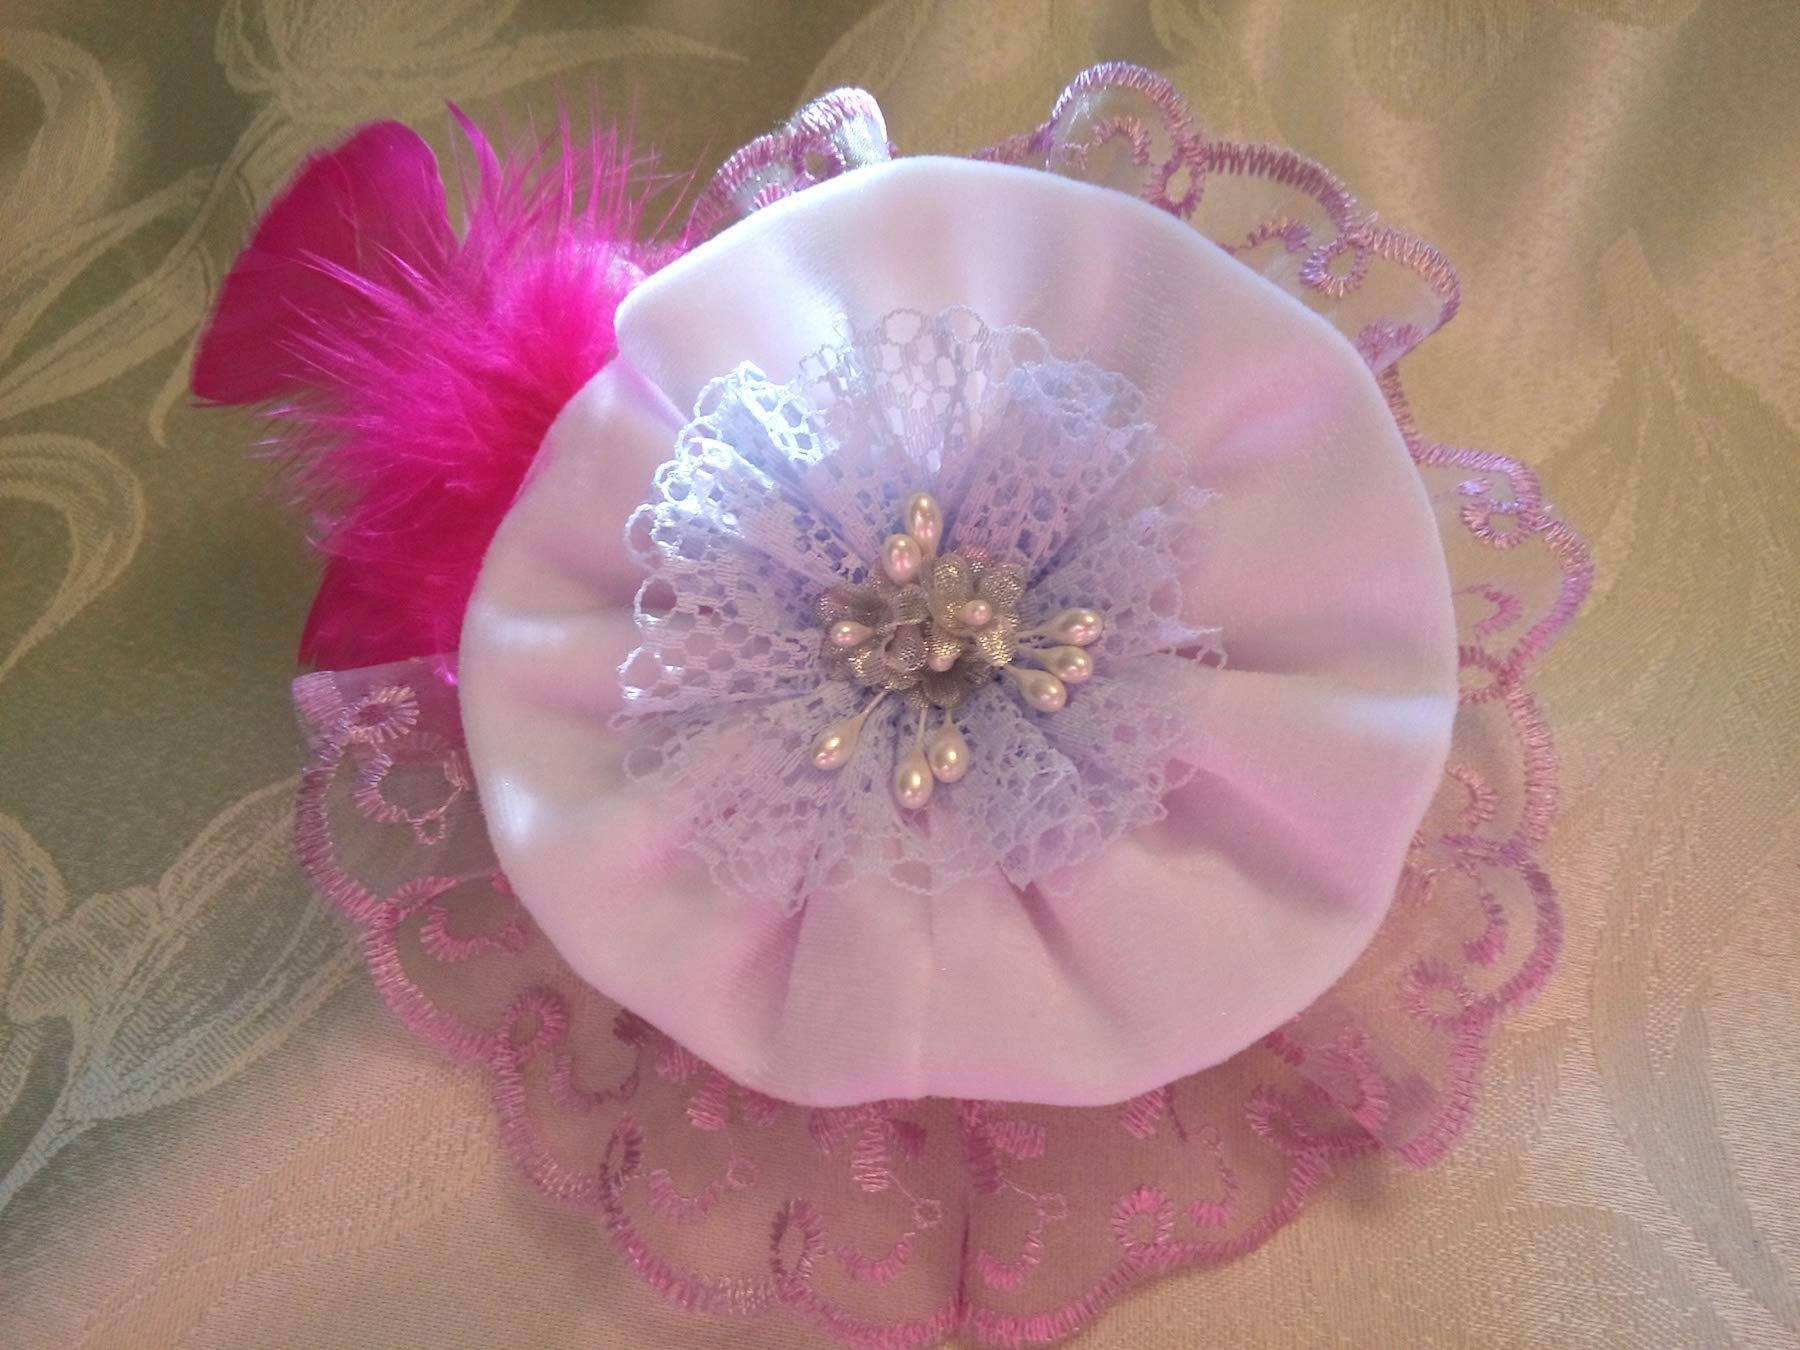 Light Purple White Velvet Lace Flower Large Brooch 6'' Bridal Sash Belt Bag by Studio SilkFantazi